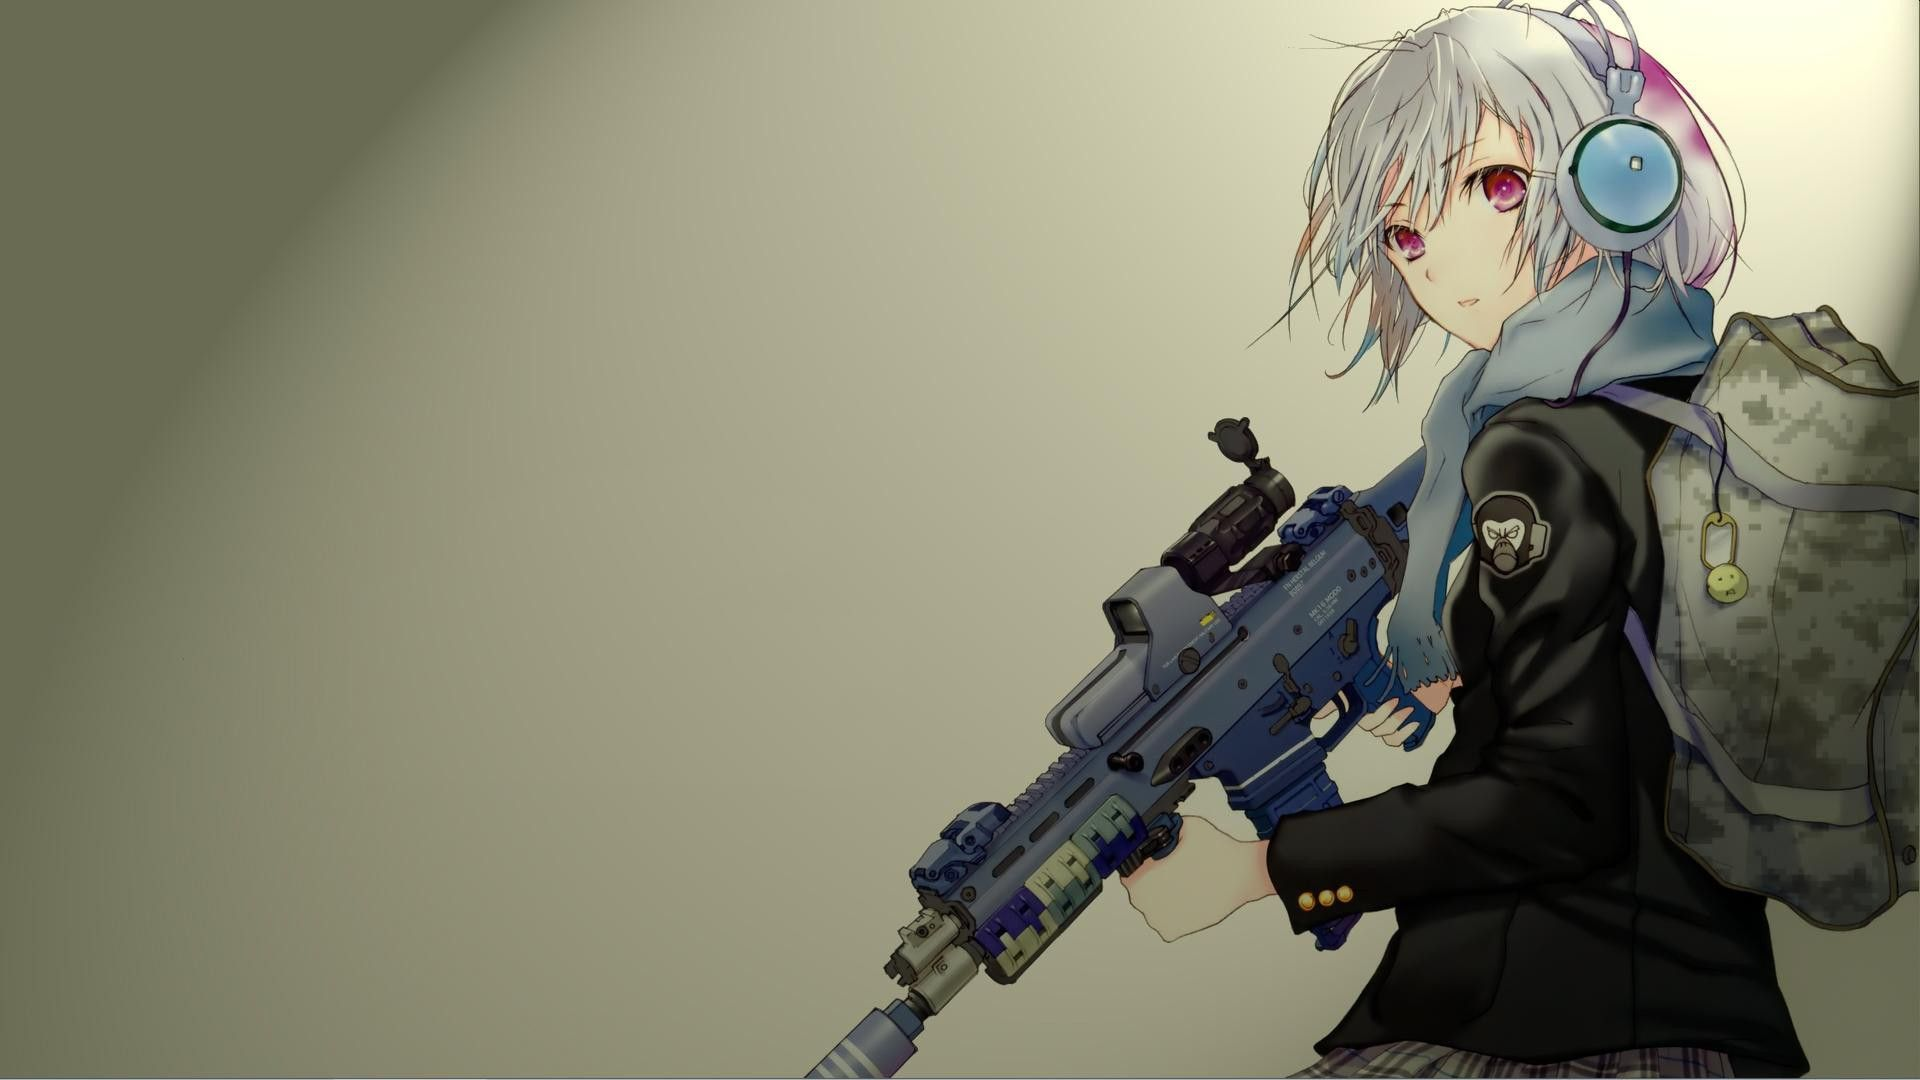 Anime Pistol Pointed Wallpapers Top Free Anime Pistol Pointed